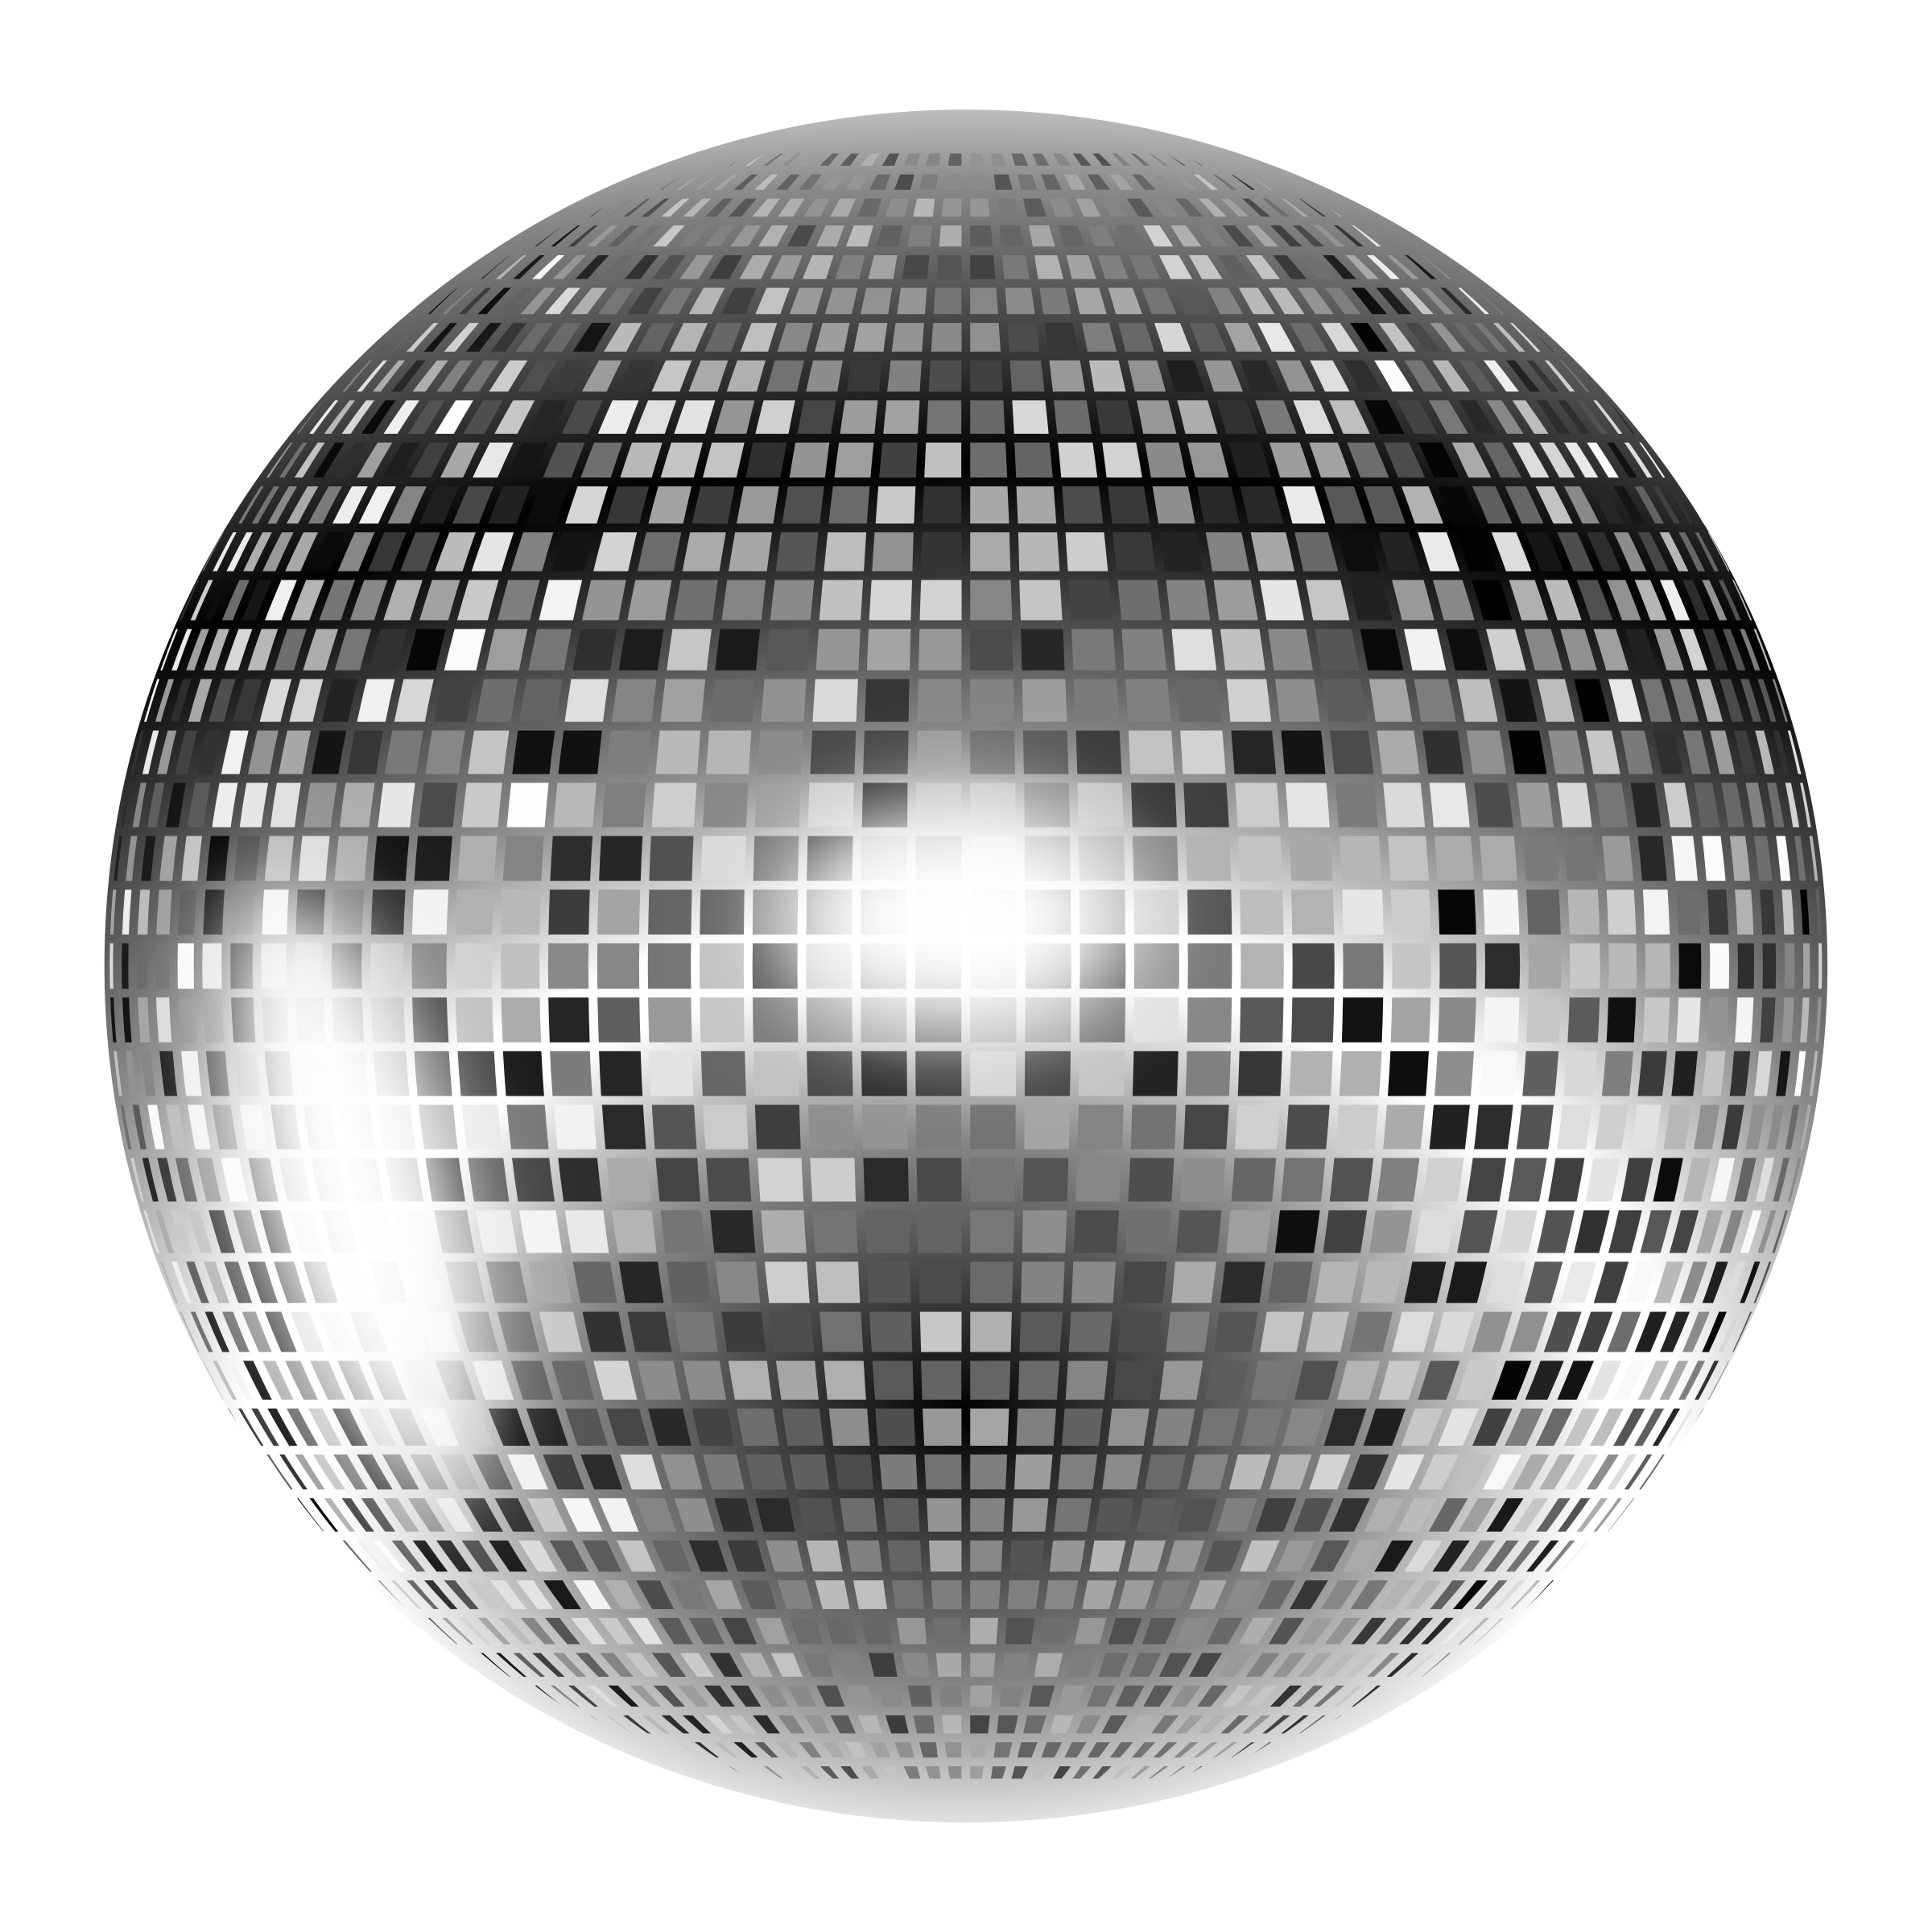 disco ball by Keistutis